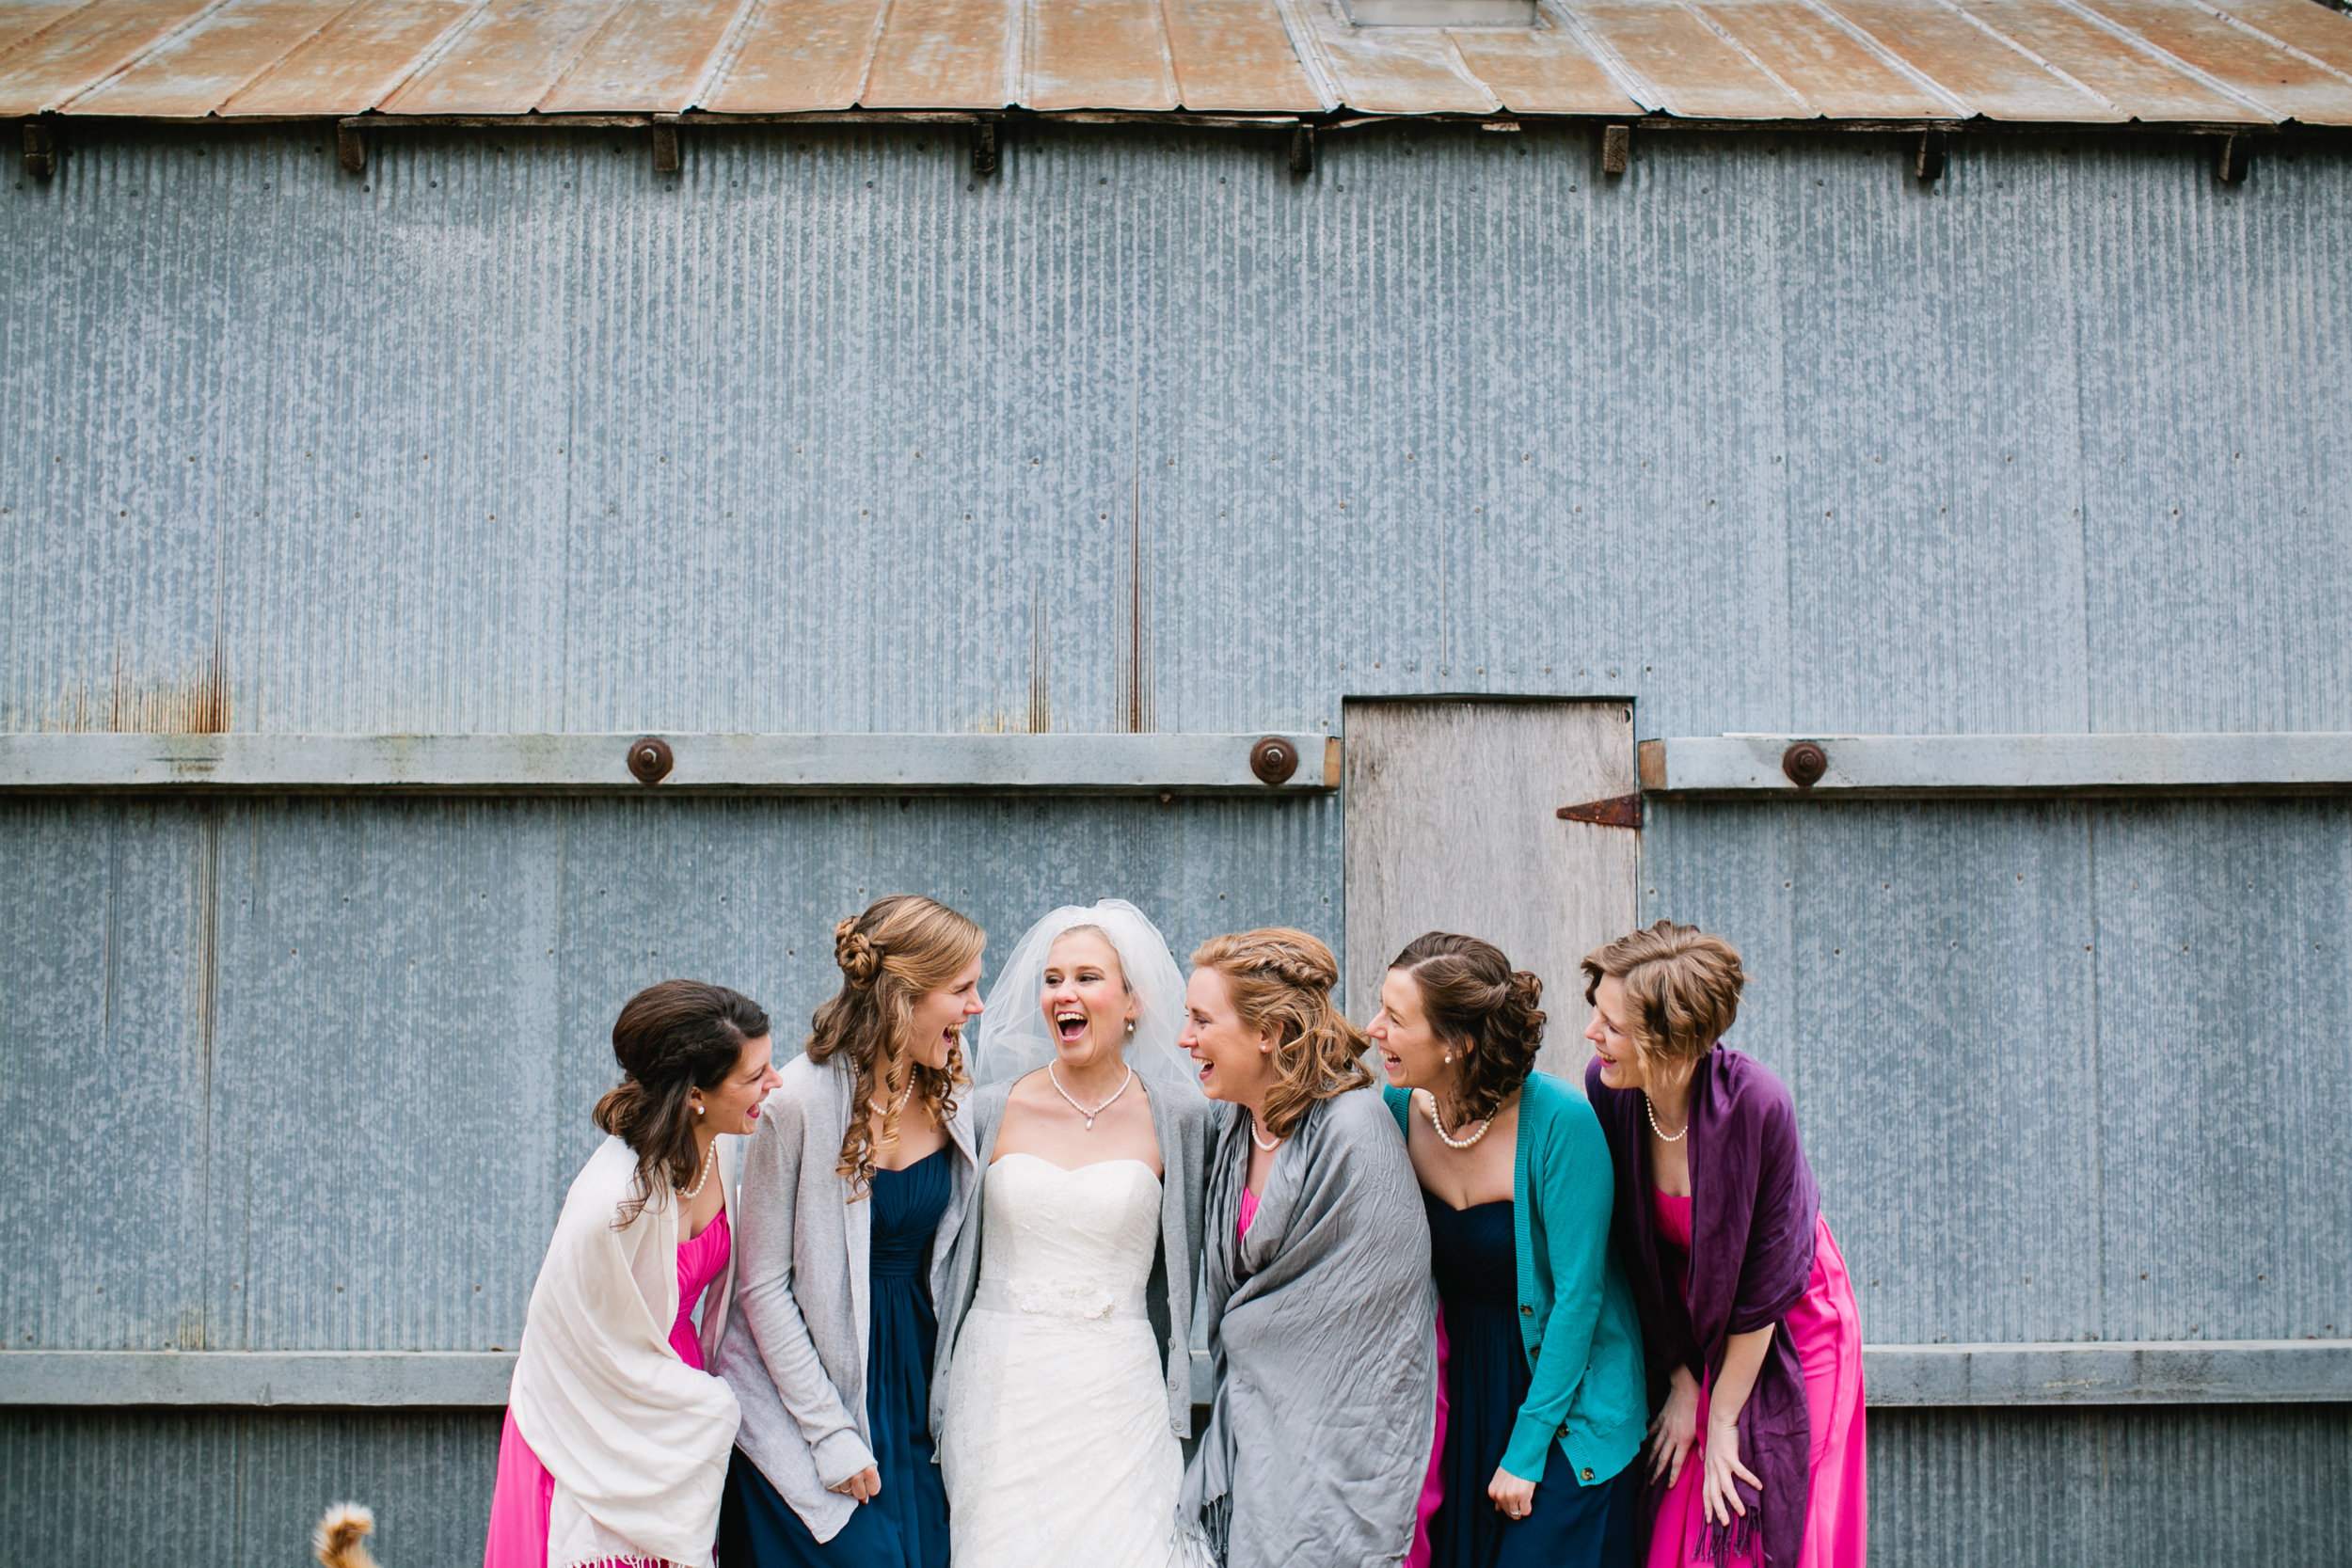 Amelia Renee is an award winning wedding photographer in Des Moines Iowa